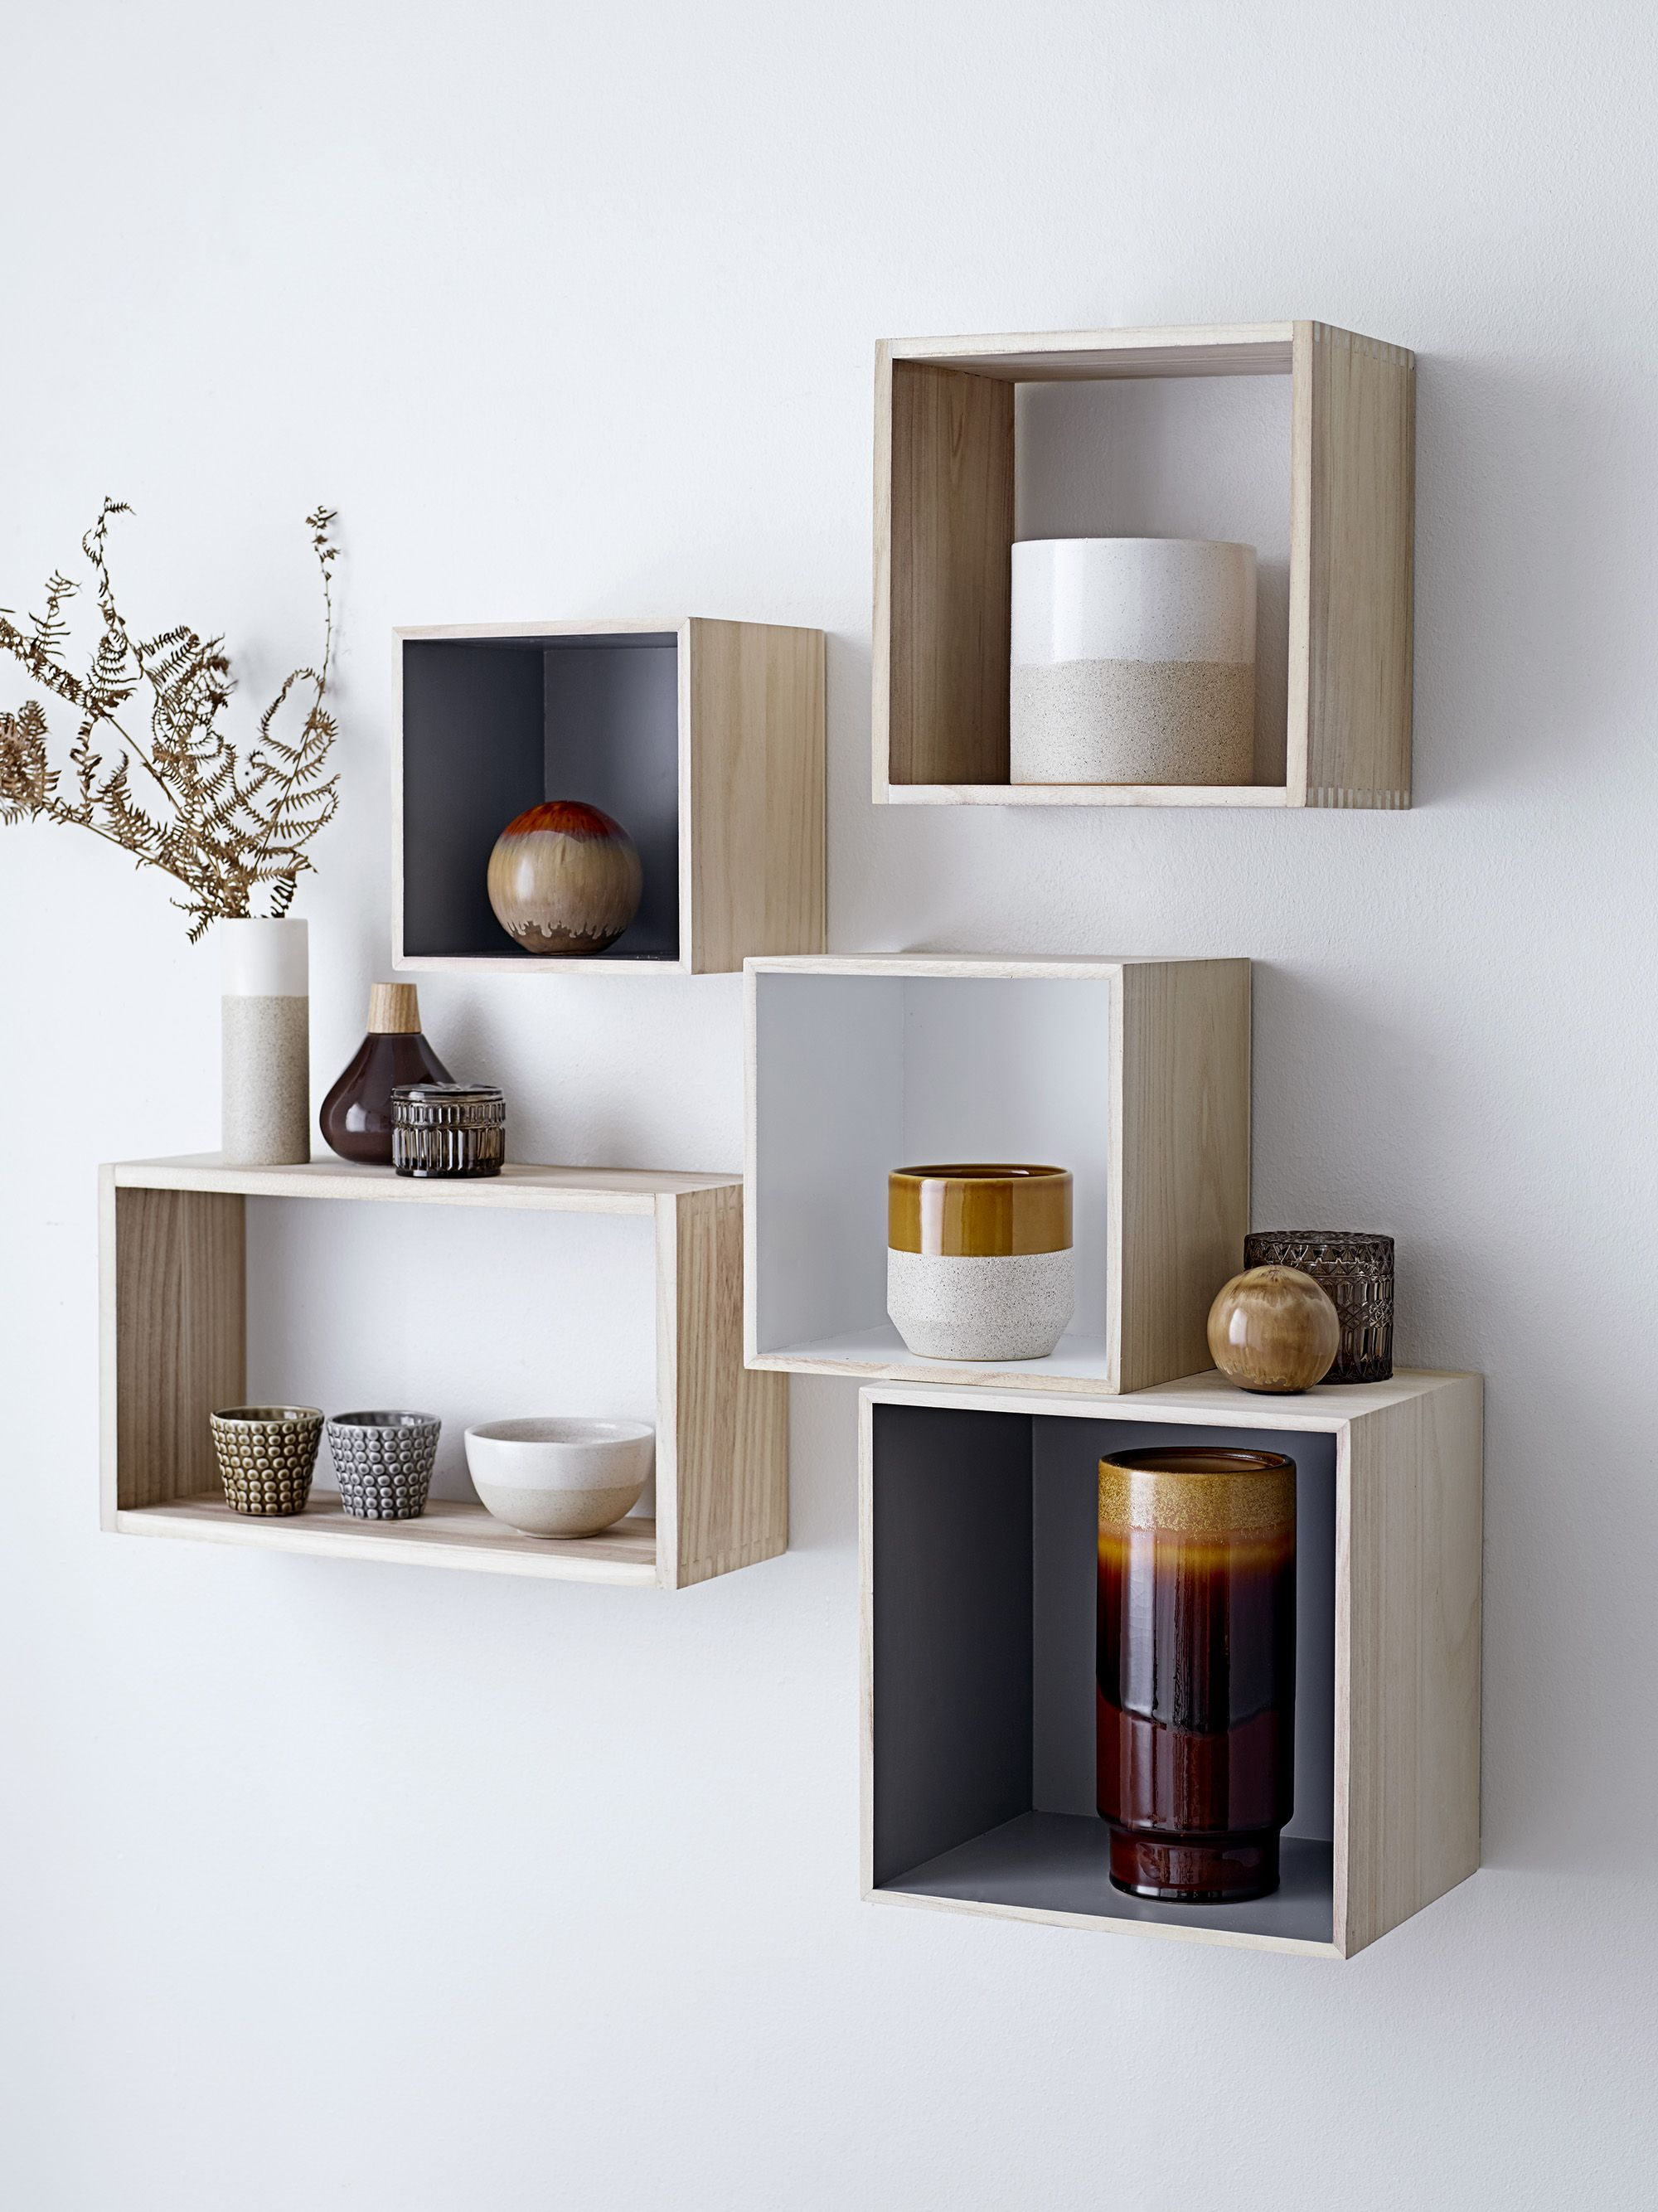 Create A Personal Display With Stylish Display Boxes   Design By  Bloomingville